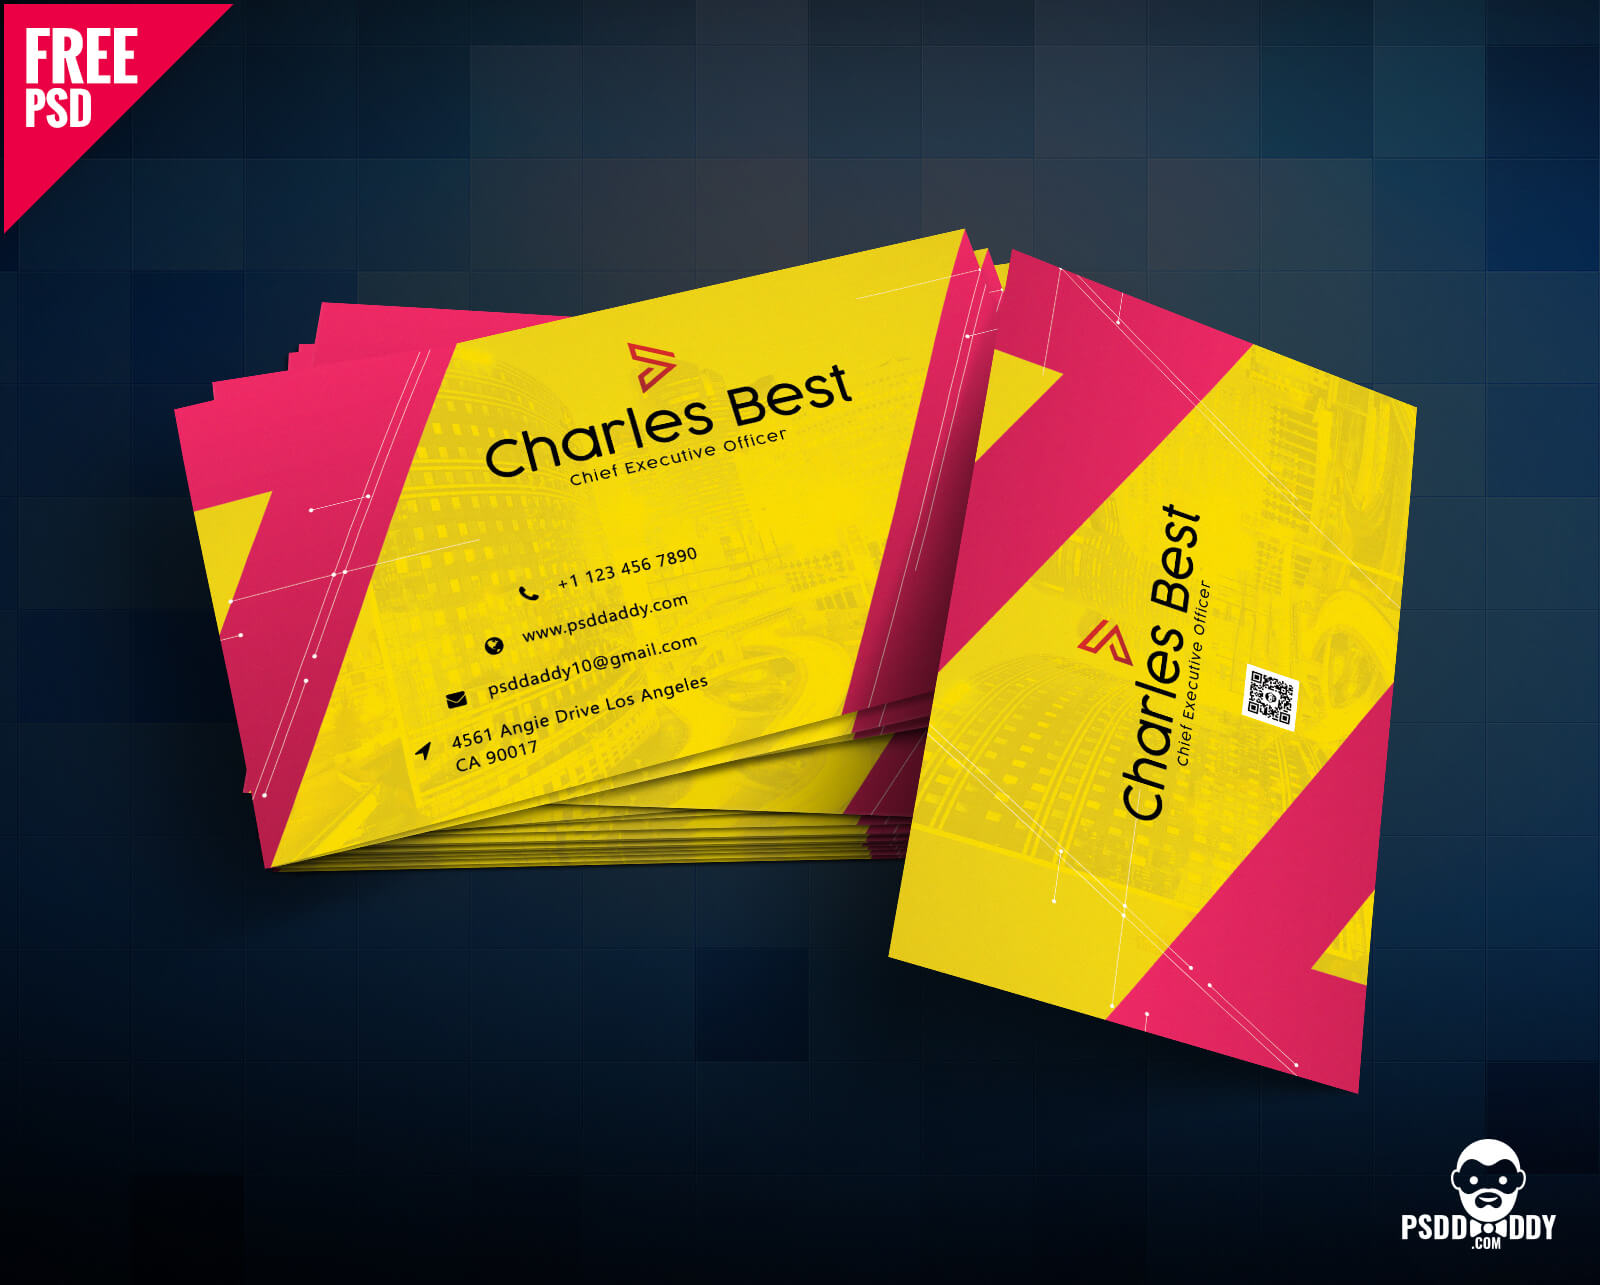 Download] Creative Business Card Free Psd | Psddaddy In Visiting Card Templates For Photoshop